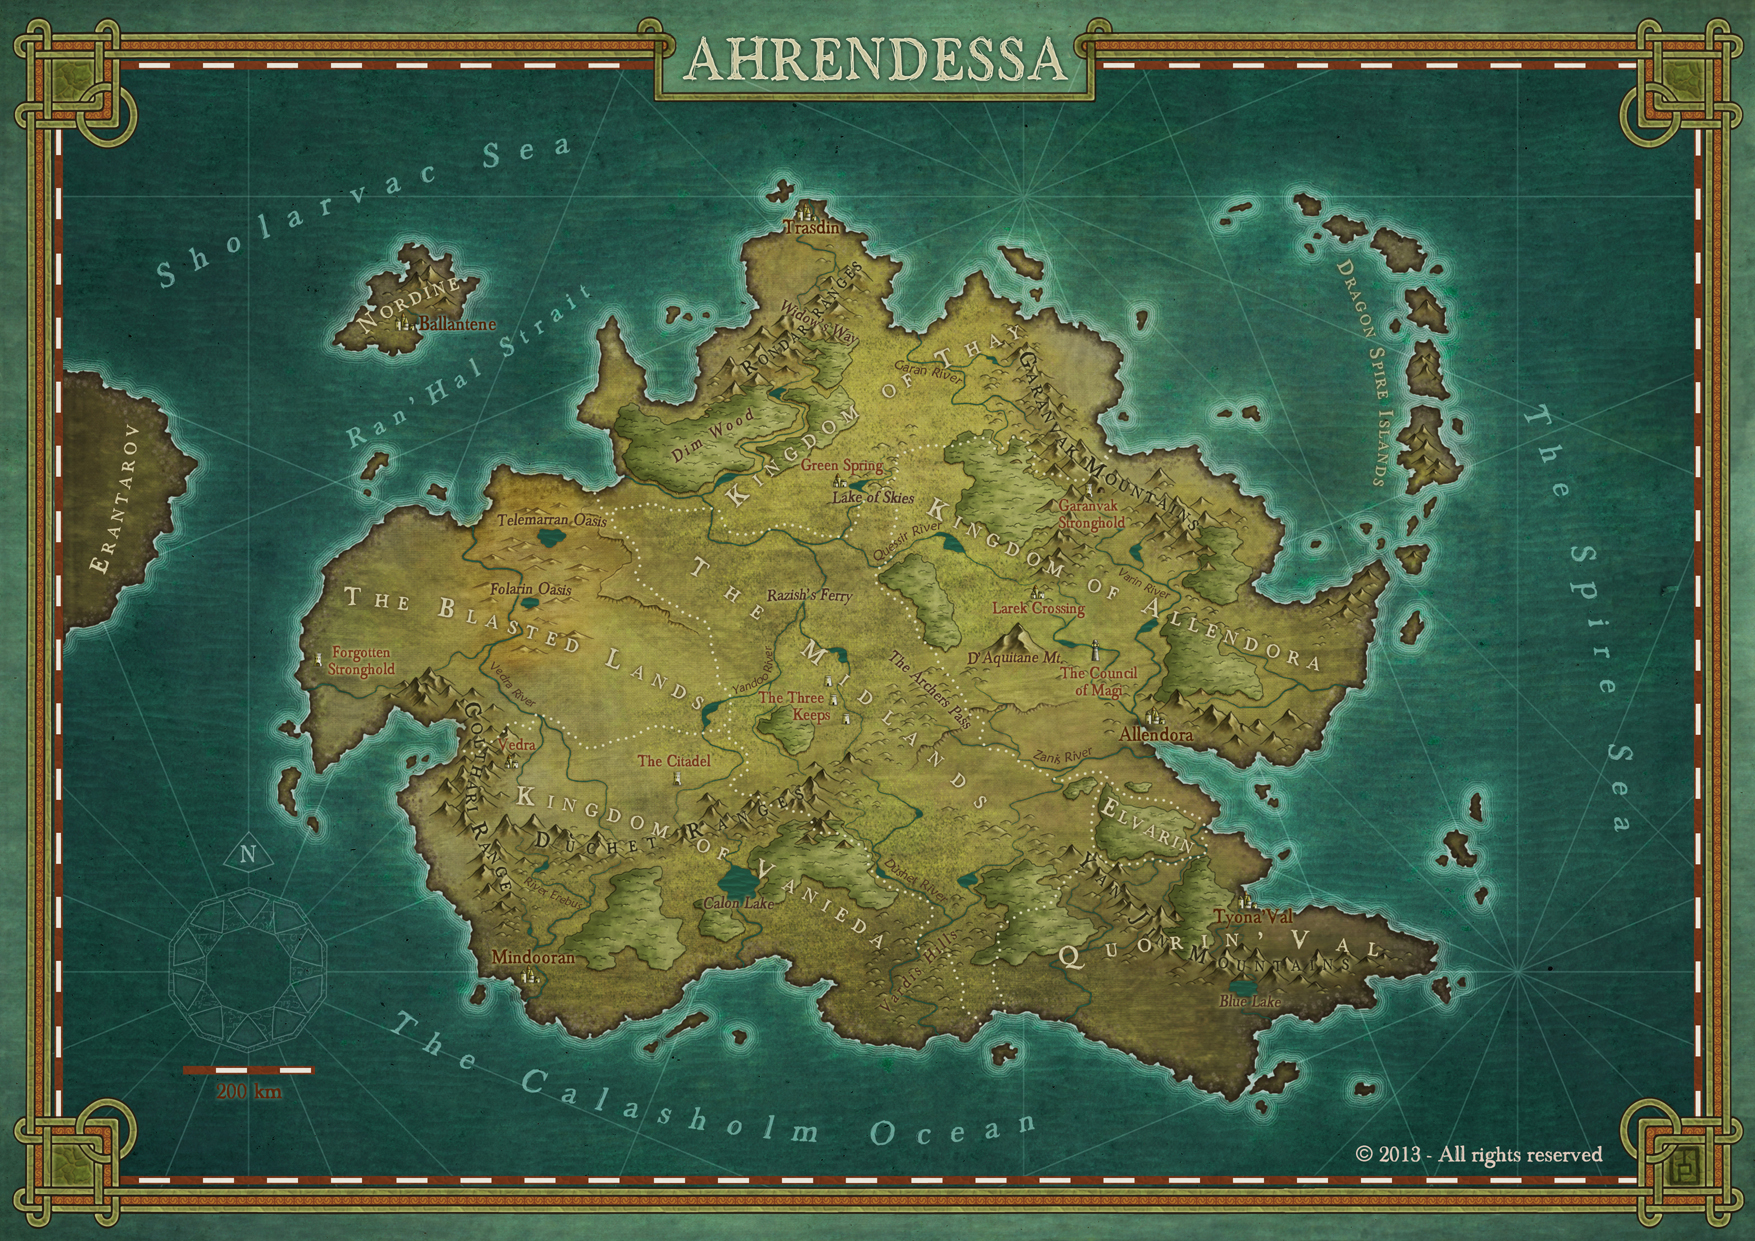 Ahrendessa, commission for the upcoming novel Destiny's Child